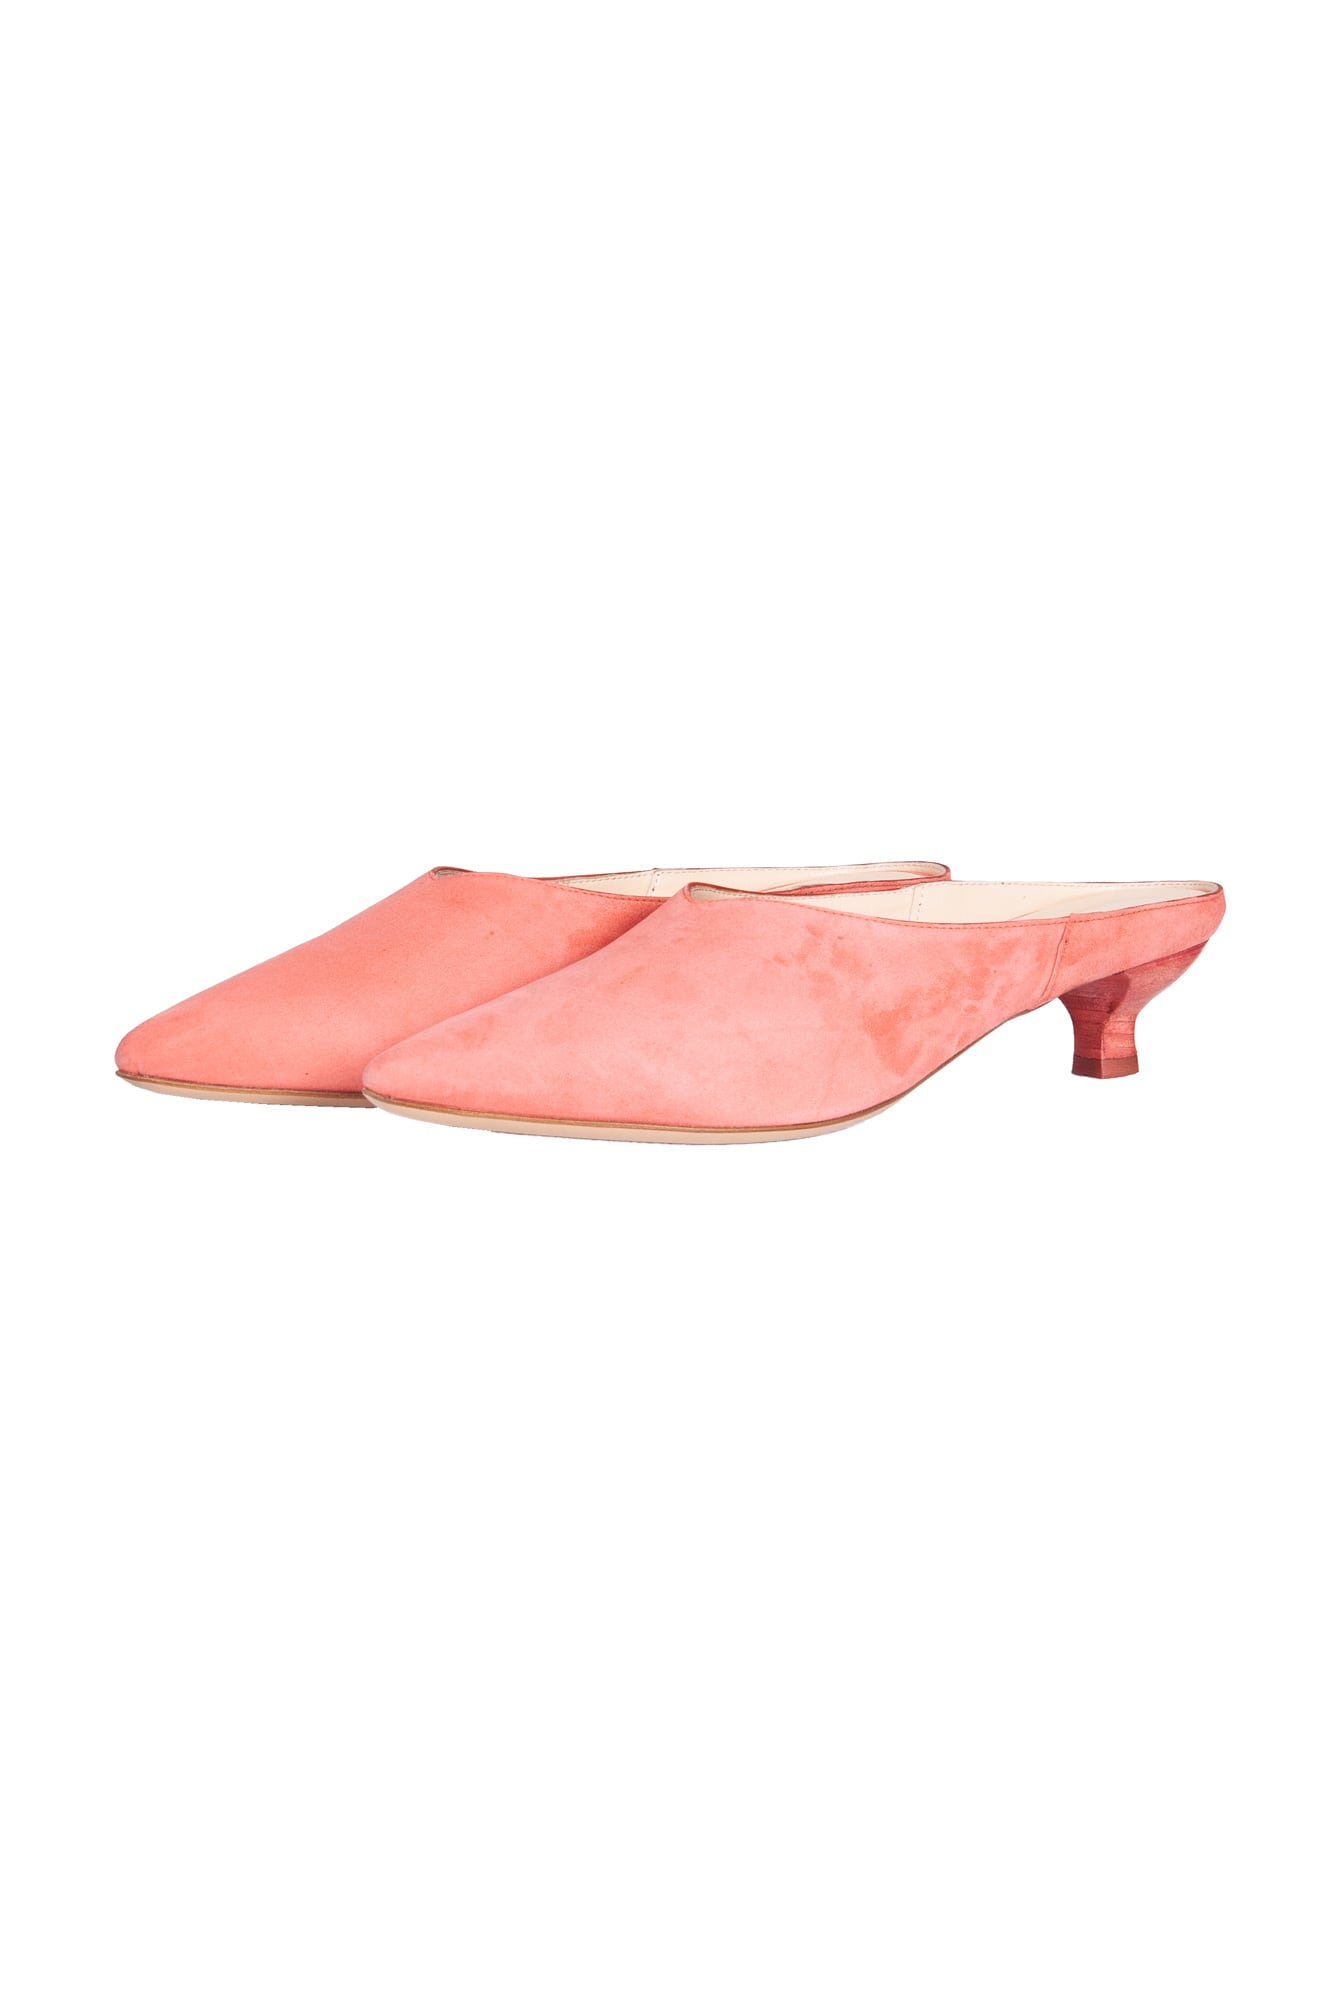 Pink Suede Leather Sabot